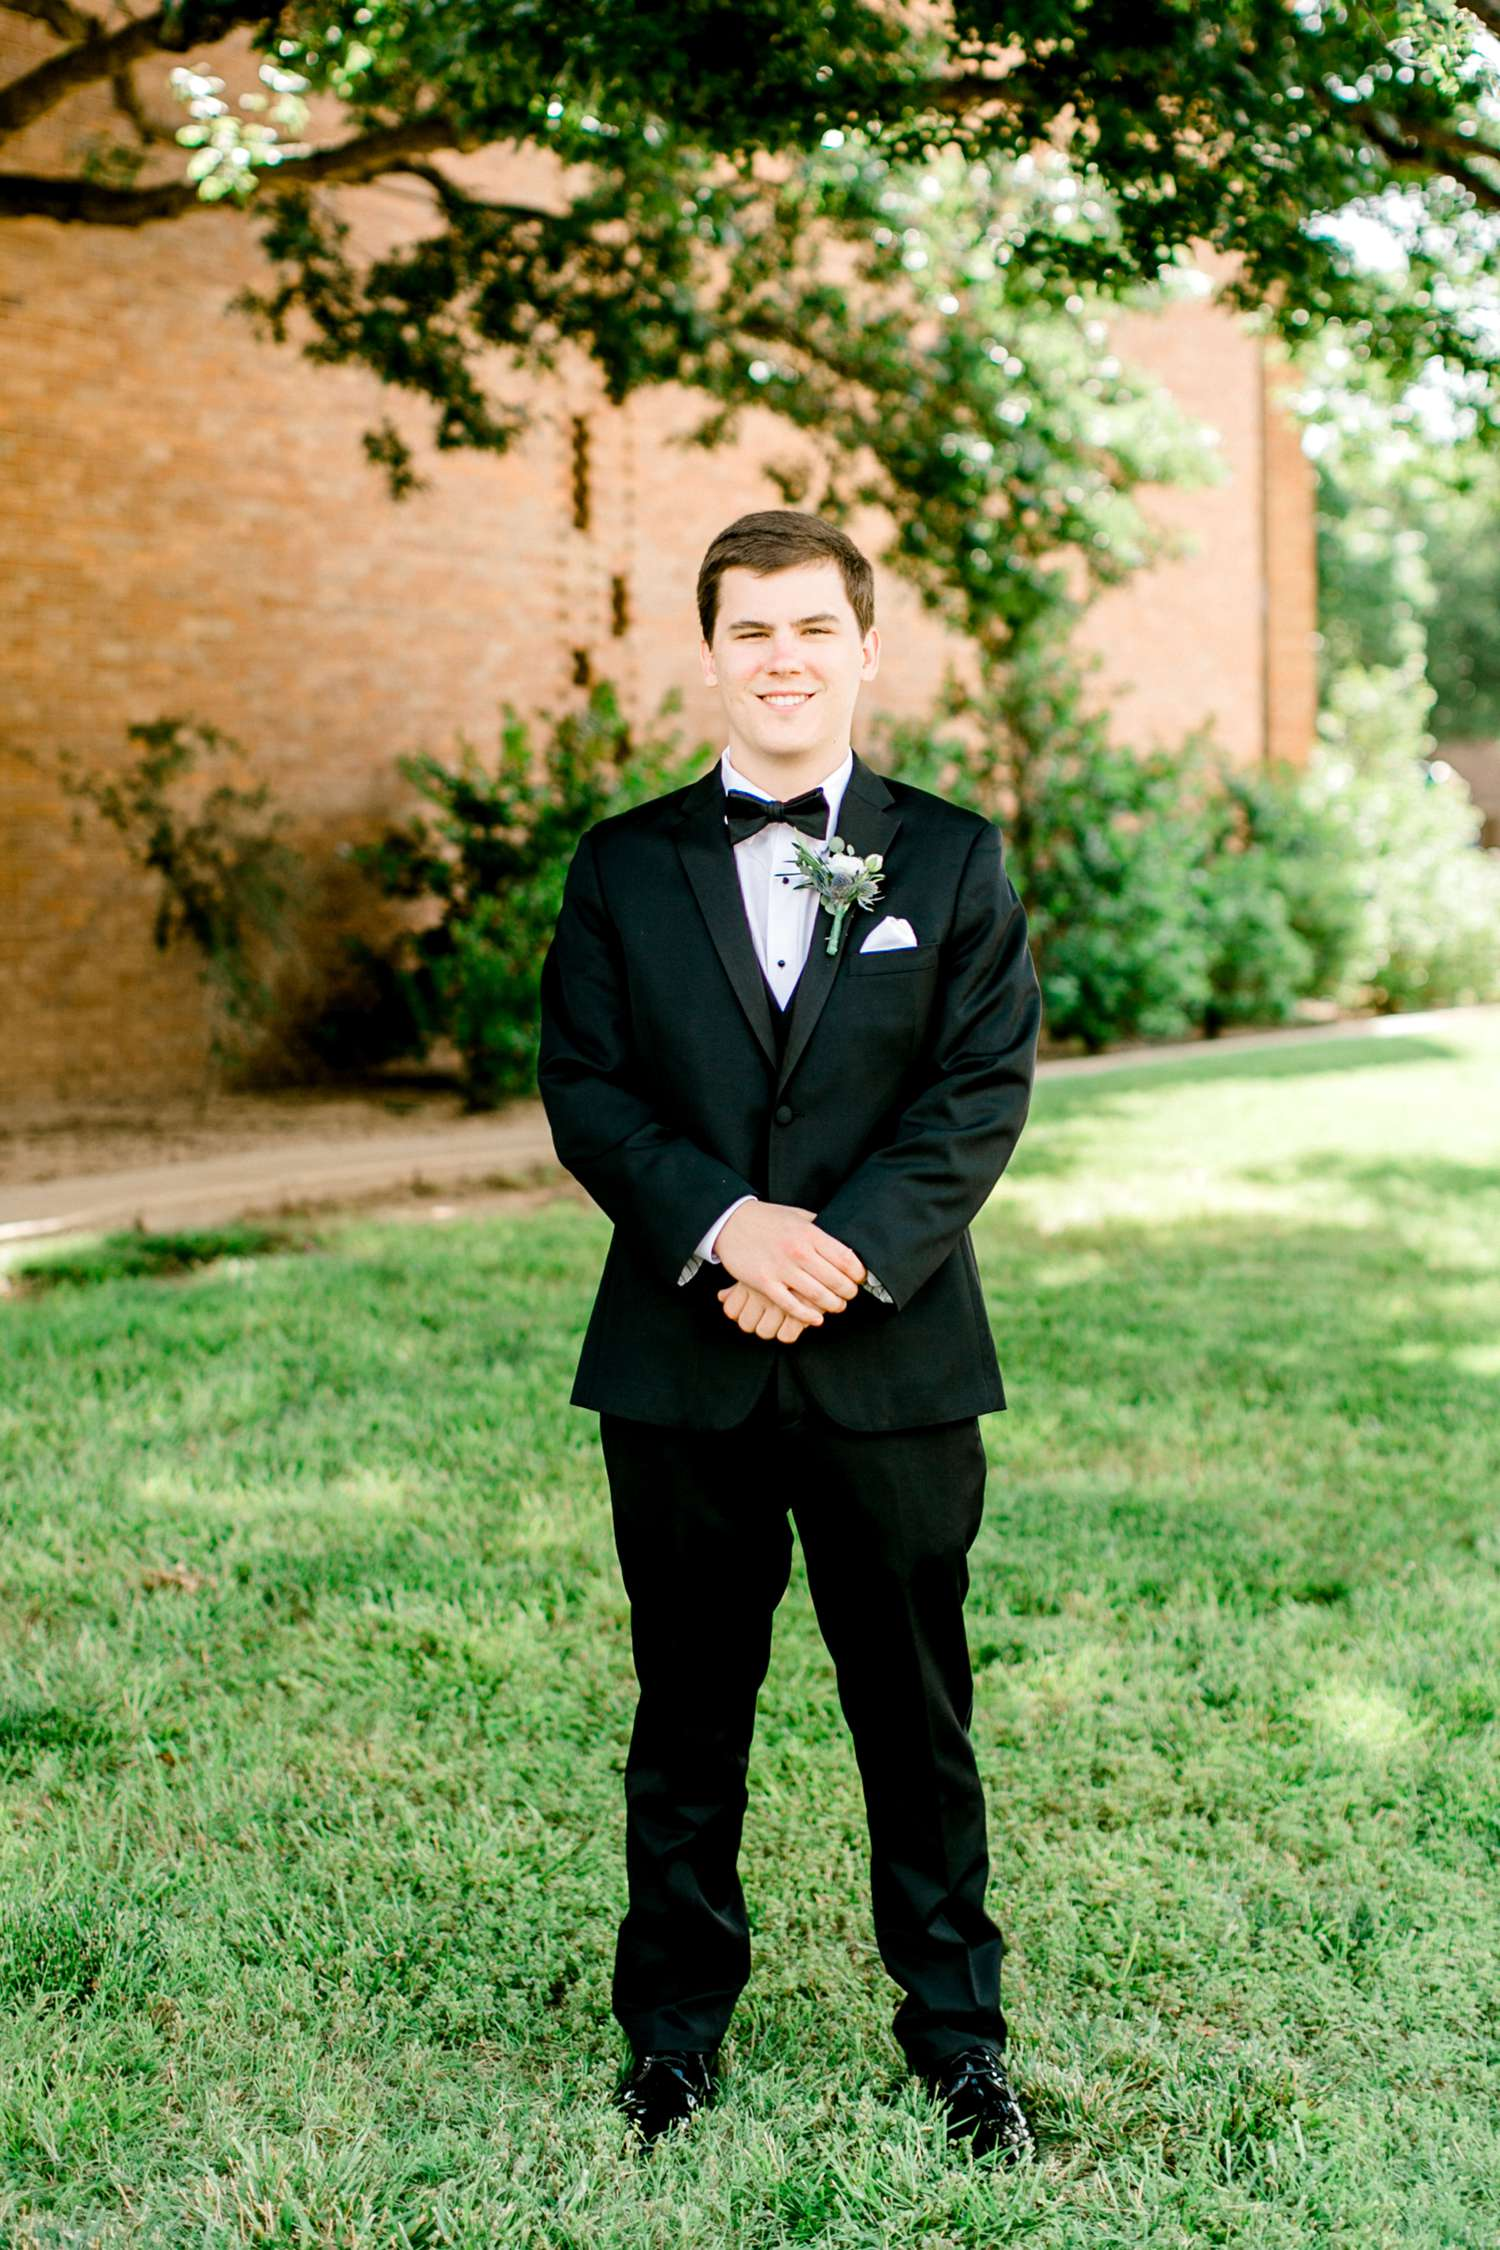 HANNAH+CRAIG+CHILDS+TEXAS+TECH+WEDDING+ALLEEJ+LUBBOCK+PHOTOGRAPHER_0016.jpg